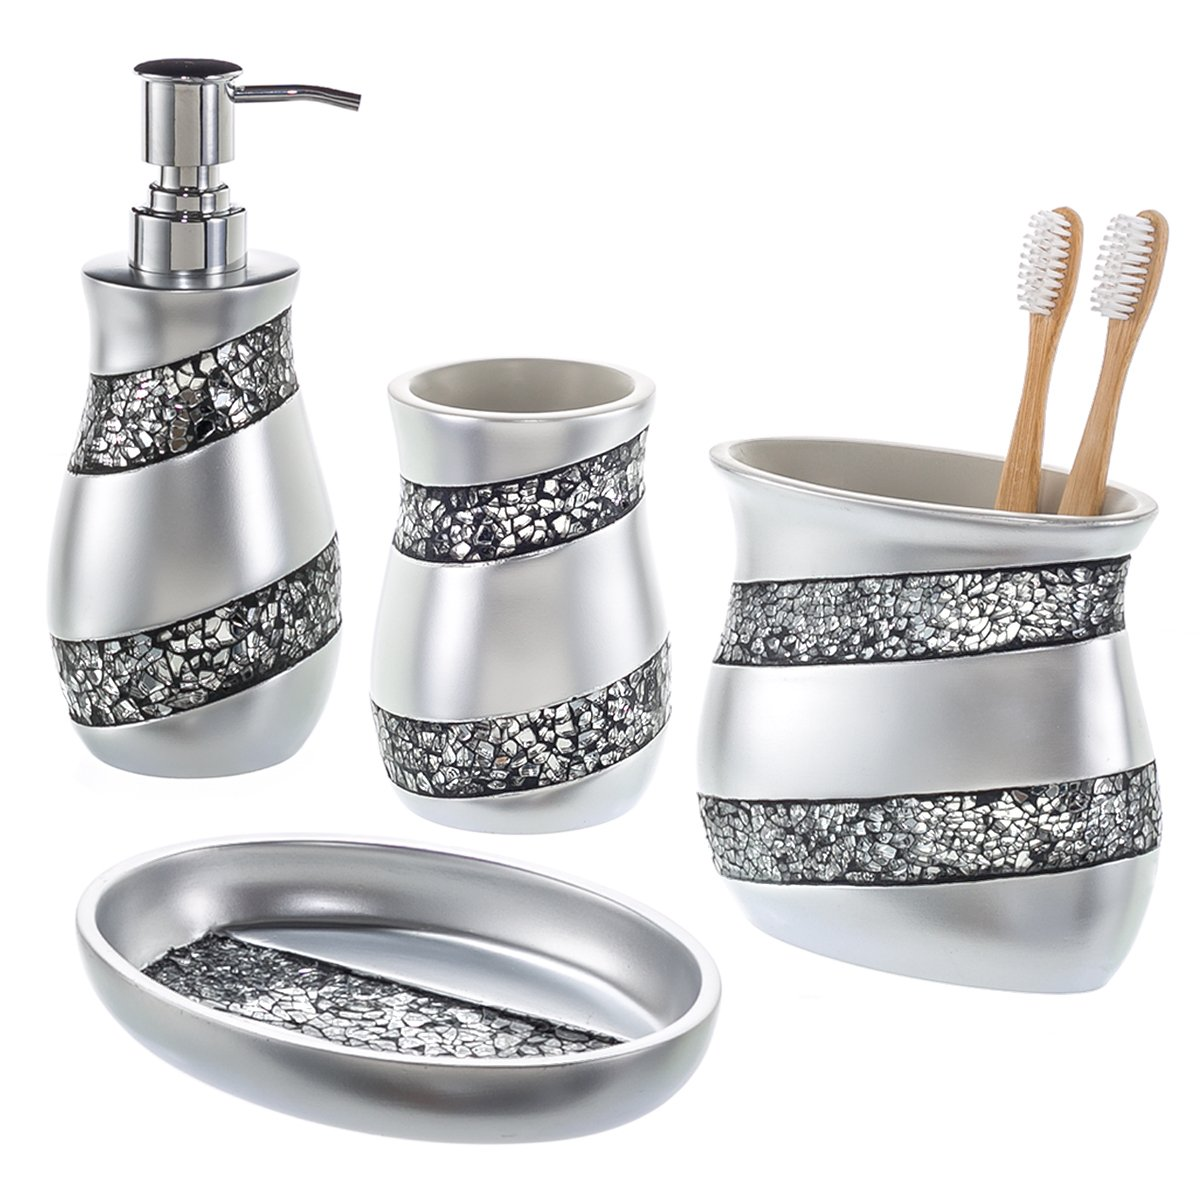 Amazon com creative scents bathroom accessories set 4 piece silver mosaic glass luxury bathroom gift set includes soap dispenser toothbrush holder